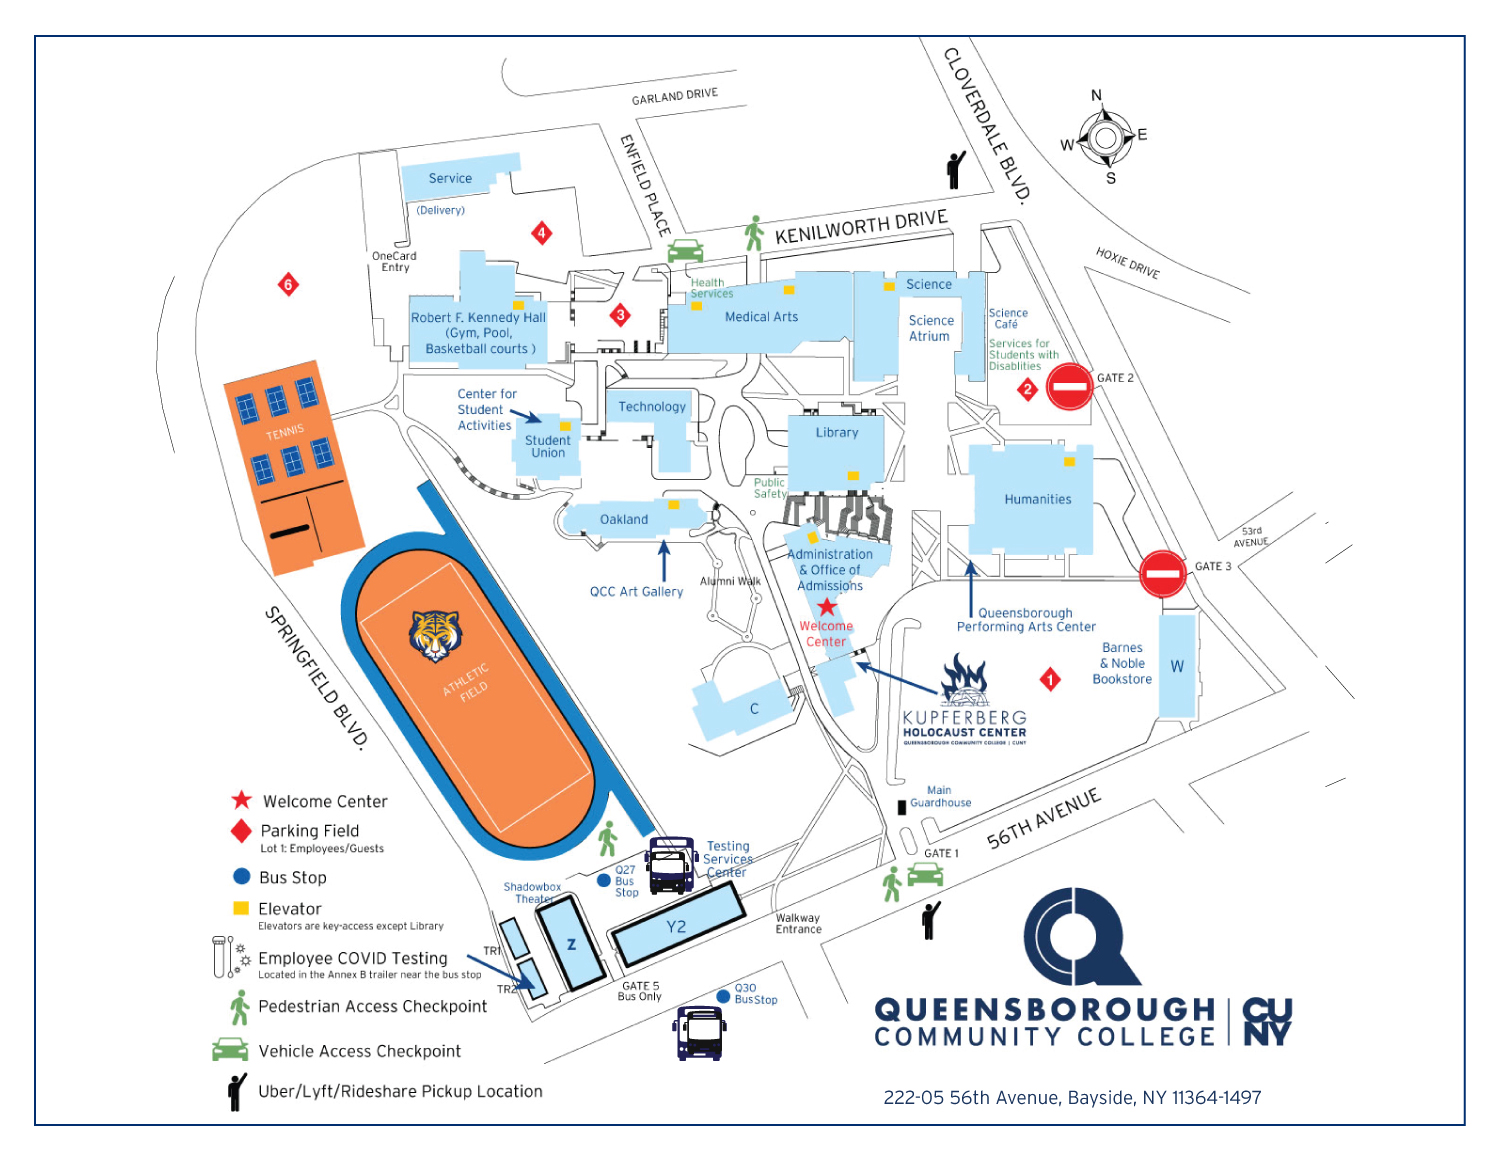 map of Queensborough Community College's campus showing building locations, parking and cultural centers